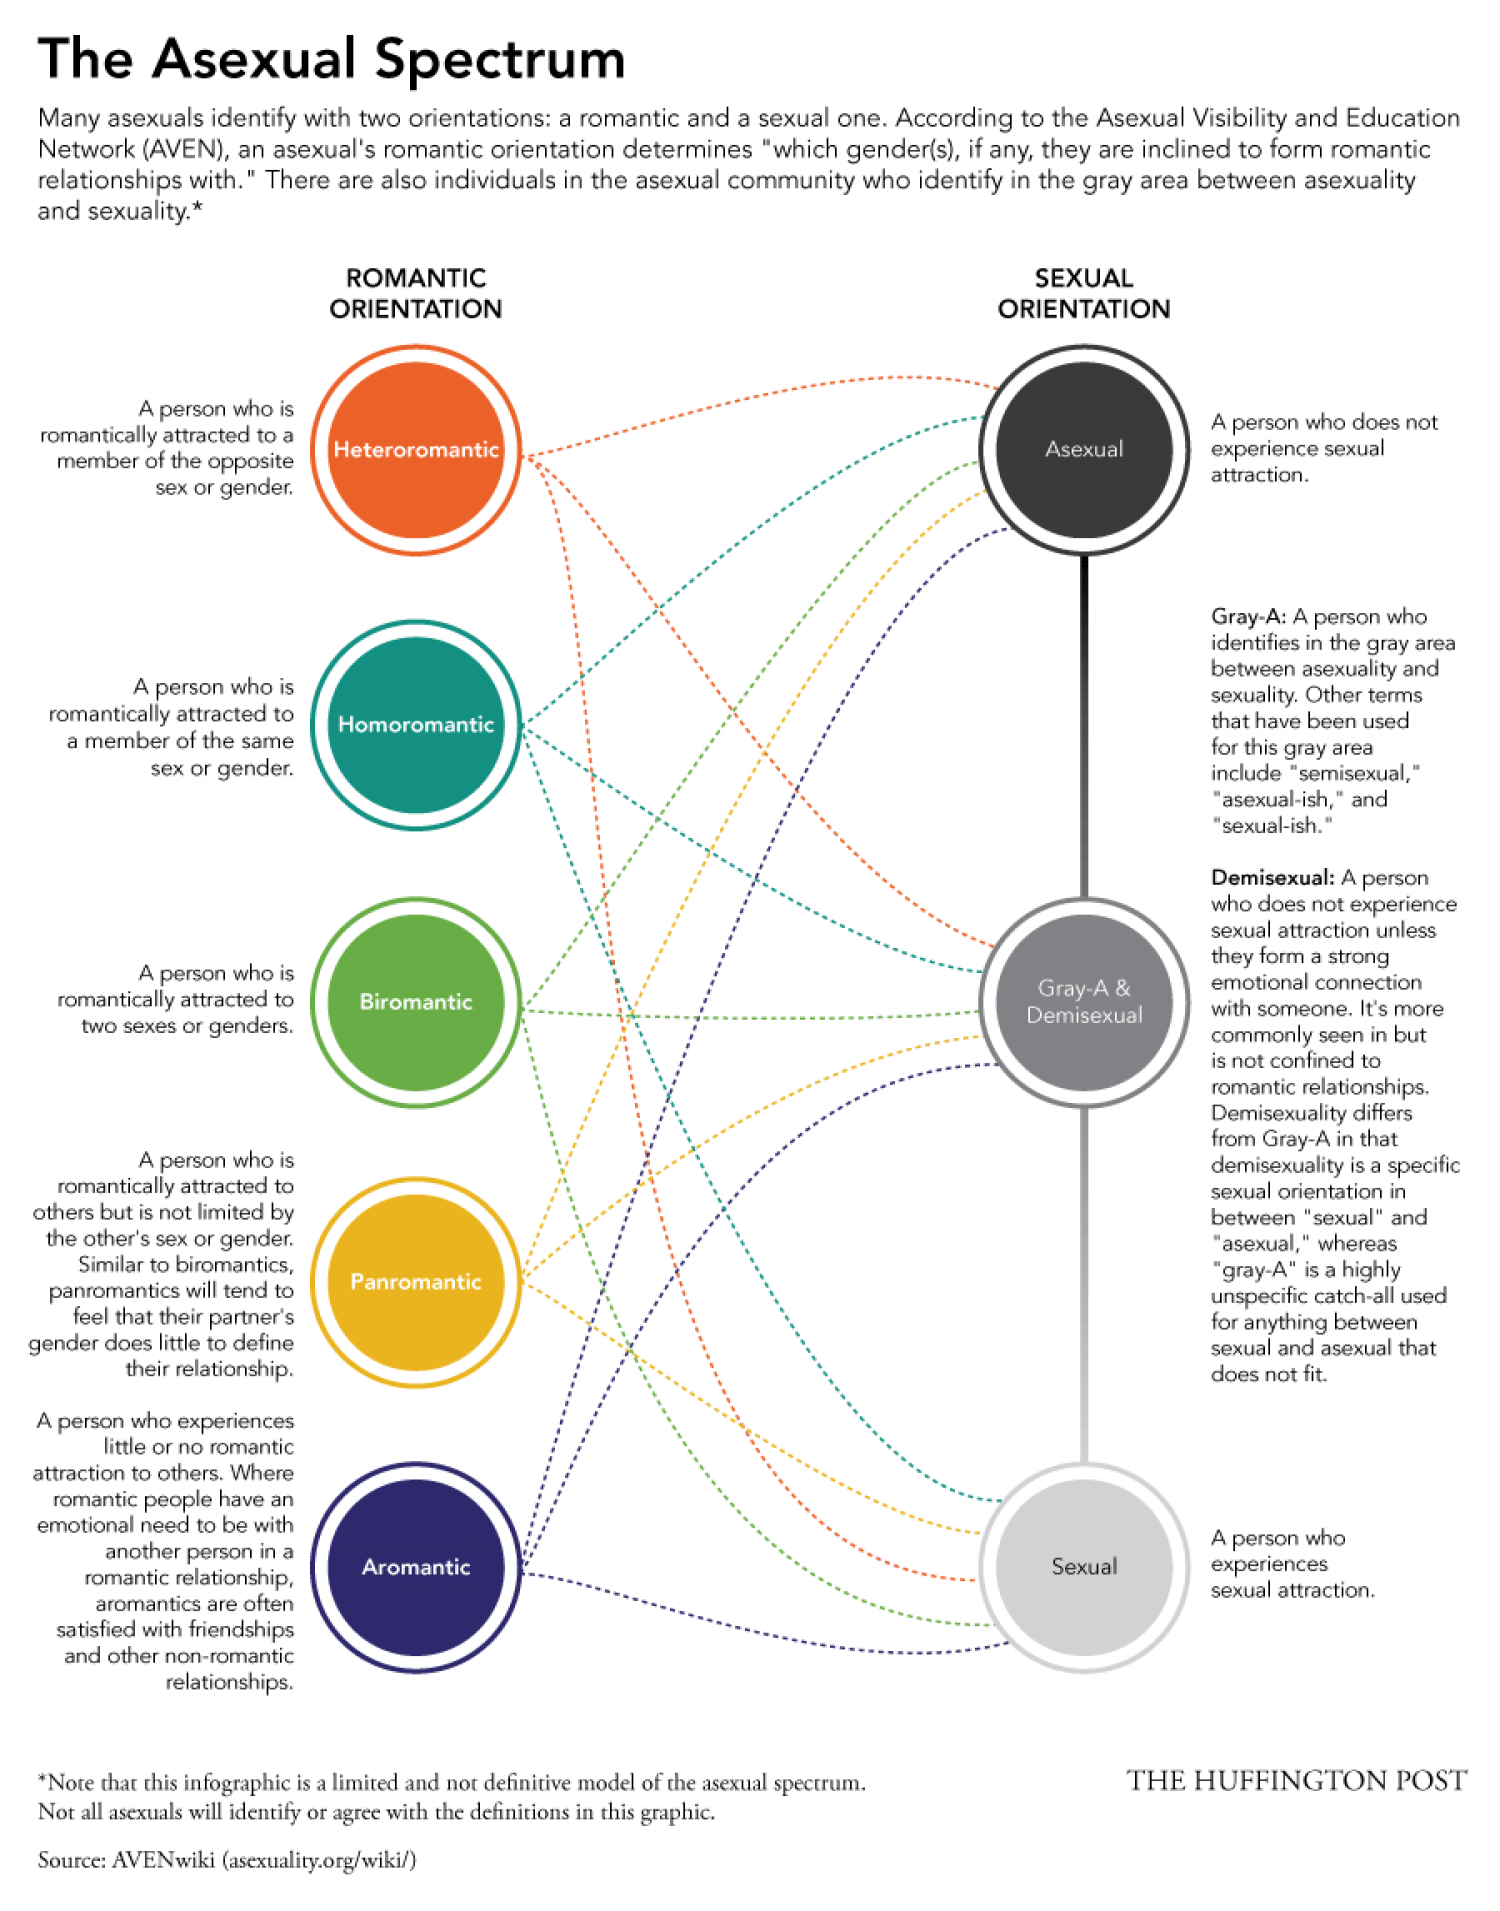 The Asexual Spectrum Infographic